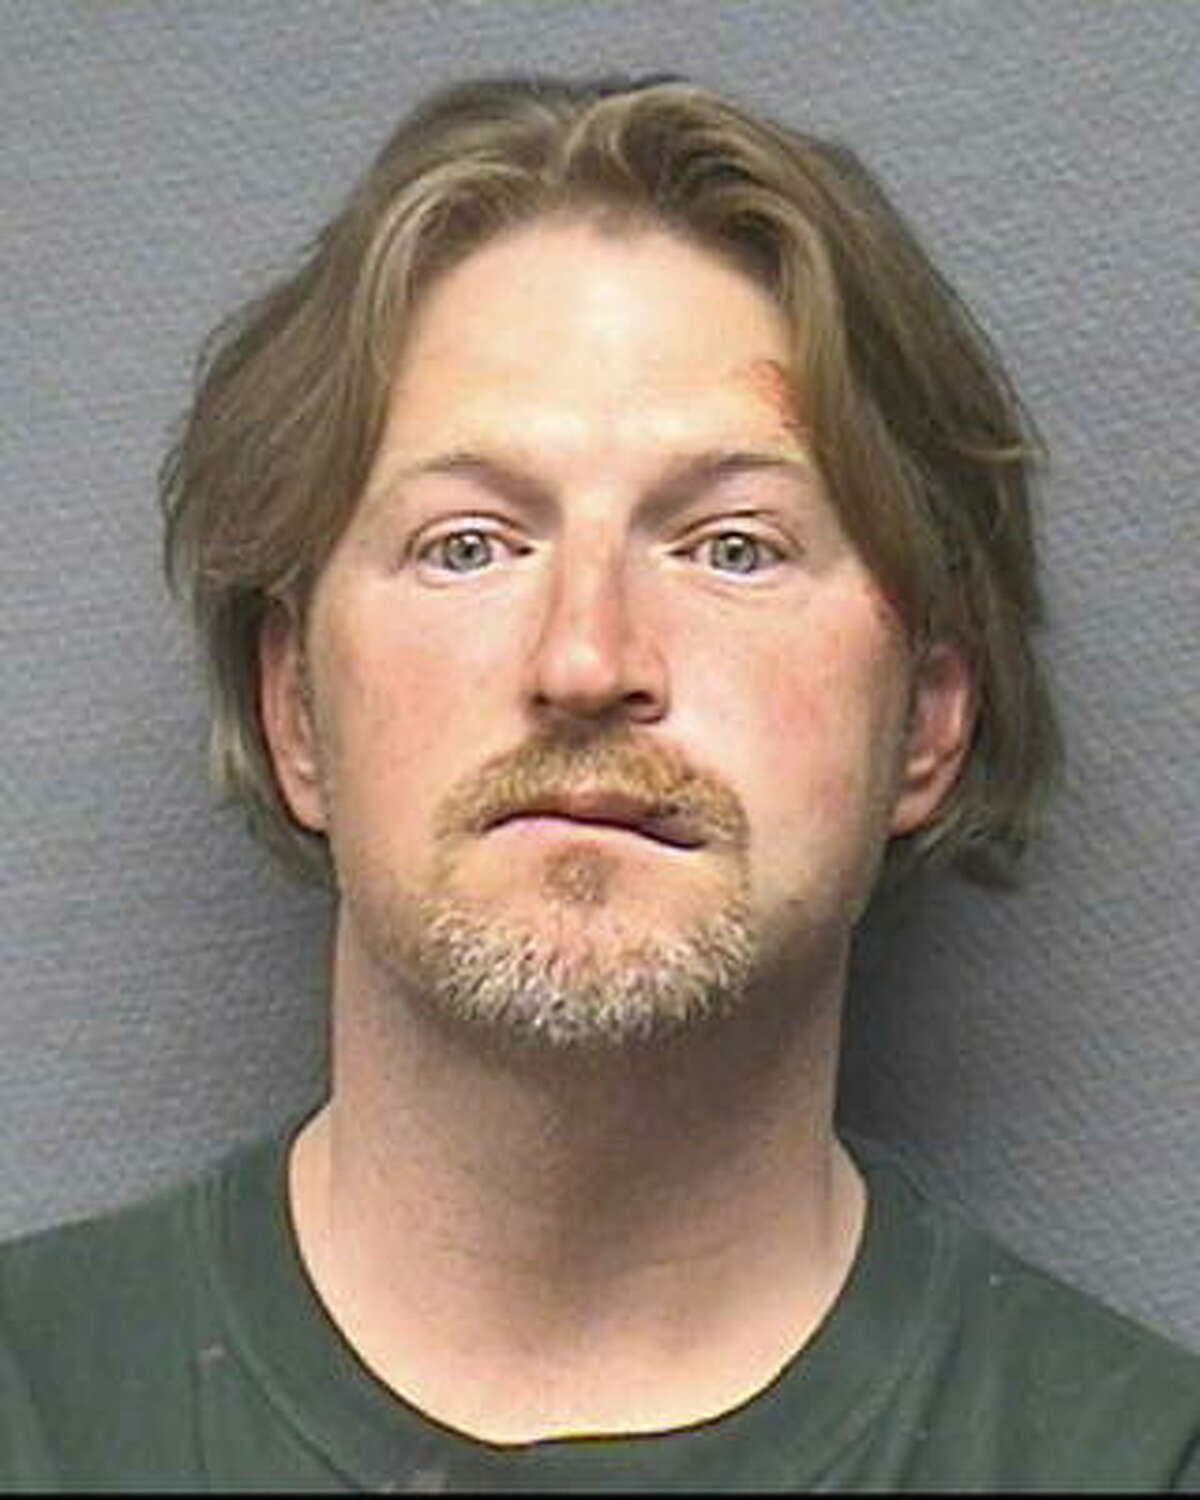 Bryan Vaclavik, 43, is free on $1,000 bail after being charged with driving while intoxicated and failure to stop and give information, both misdemeanors, according to court documents.